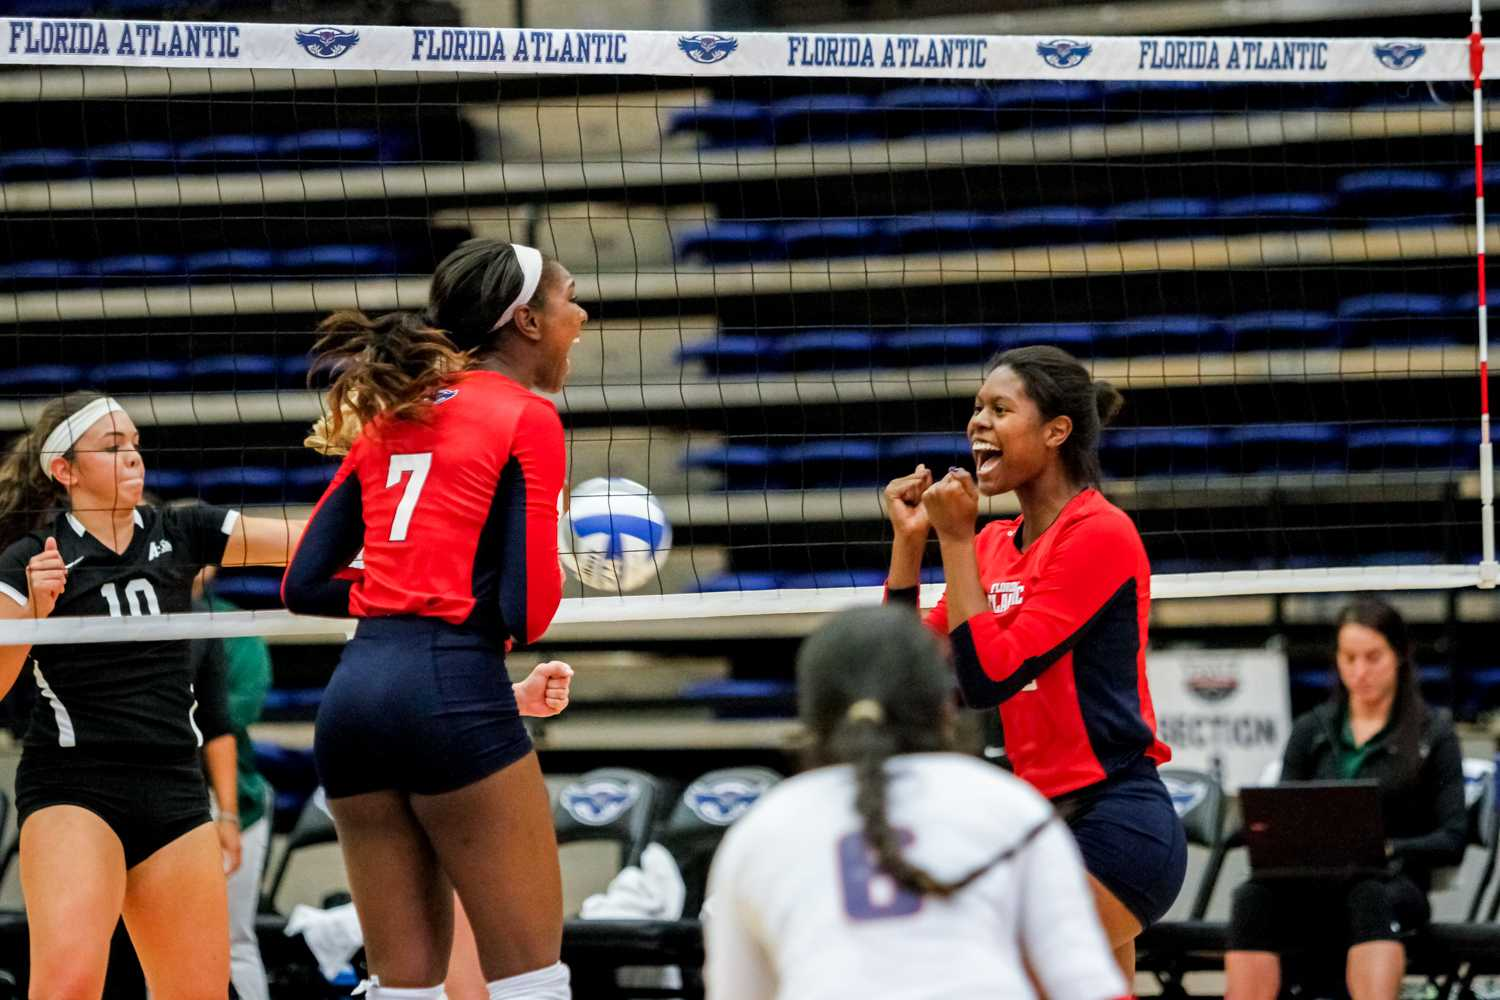 Middle blocker Brittney Brown (left) and opposite hitter Gabrielle Dixon (right) celebrate after earning a point for the Owls. Mohammed F Emran | Staff Photographer